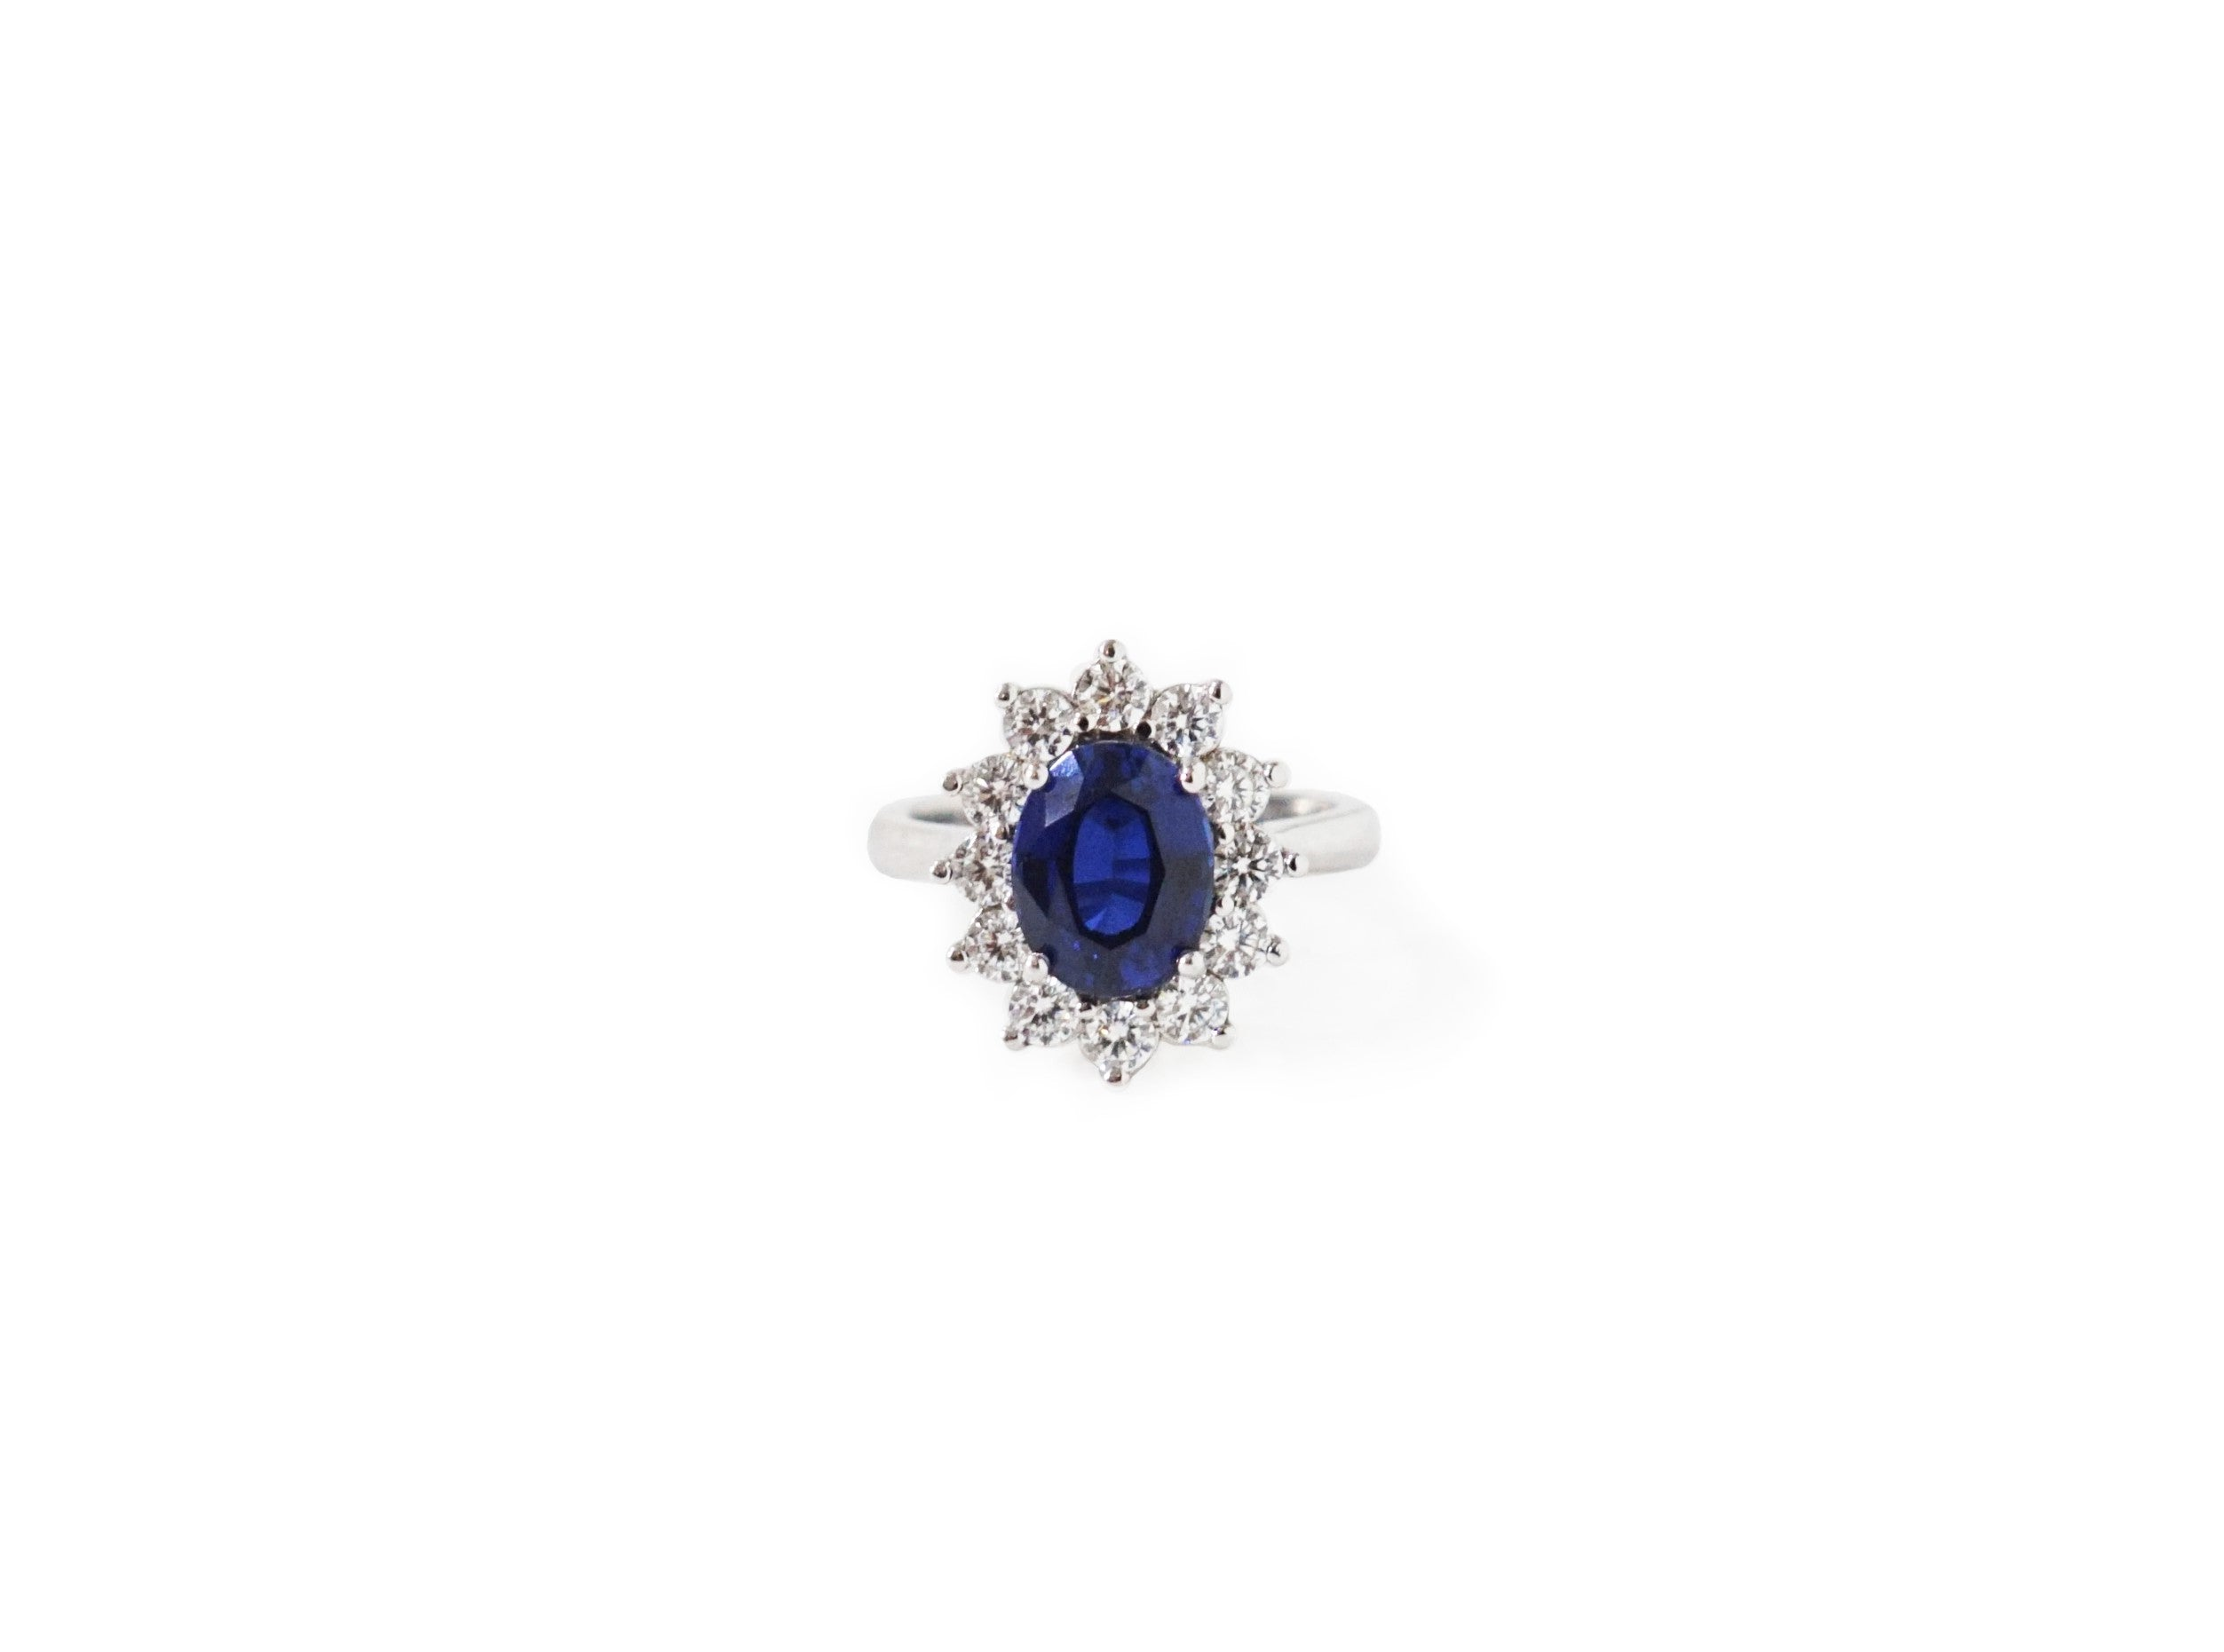 cluster ring products jewellery delightful rings sapphire antique edwardian diamond vintage and